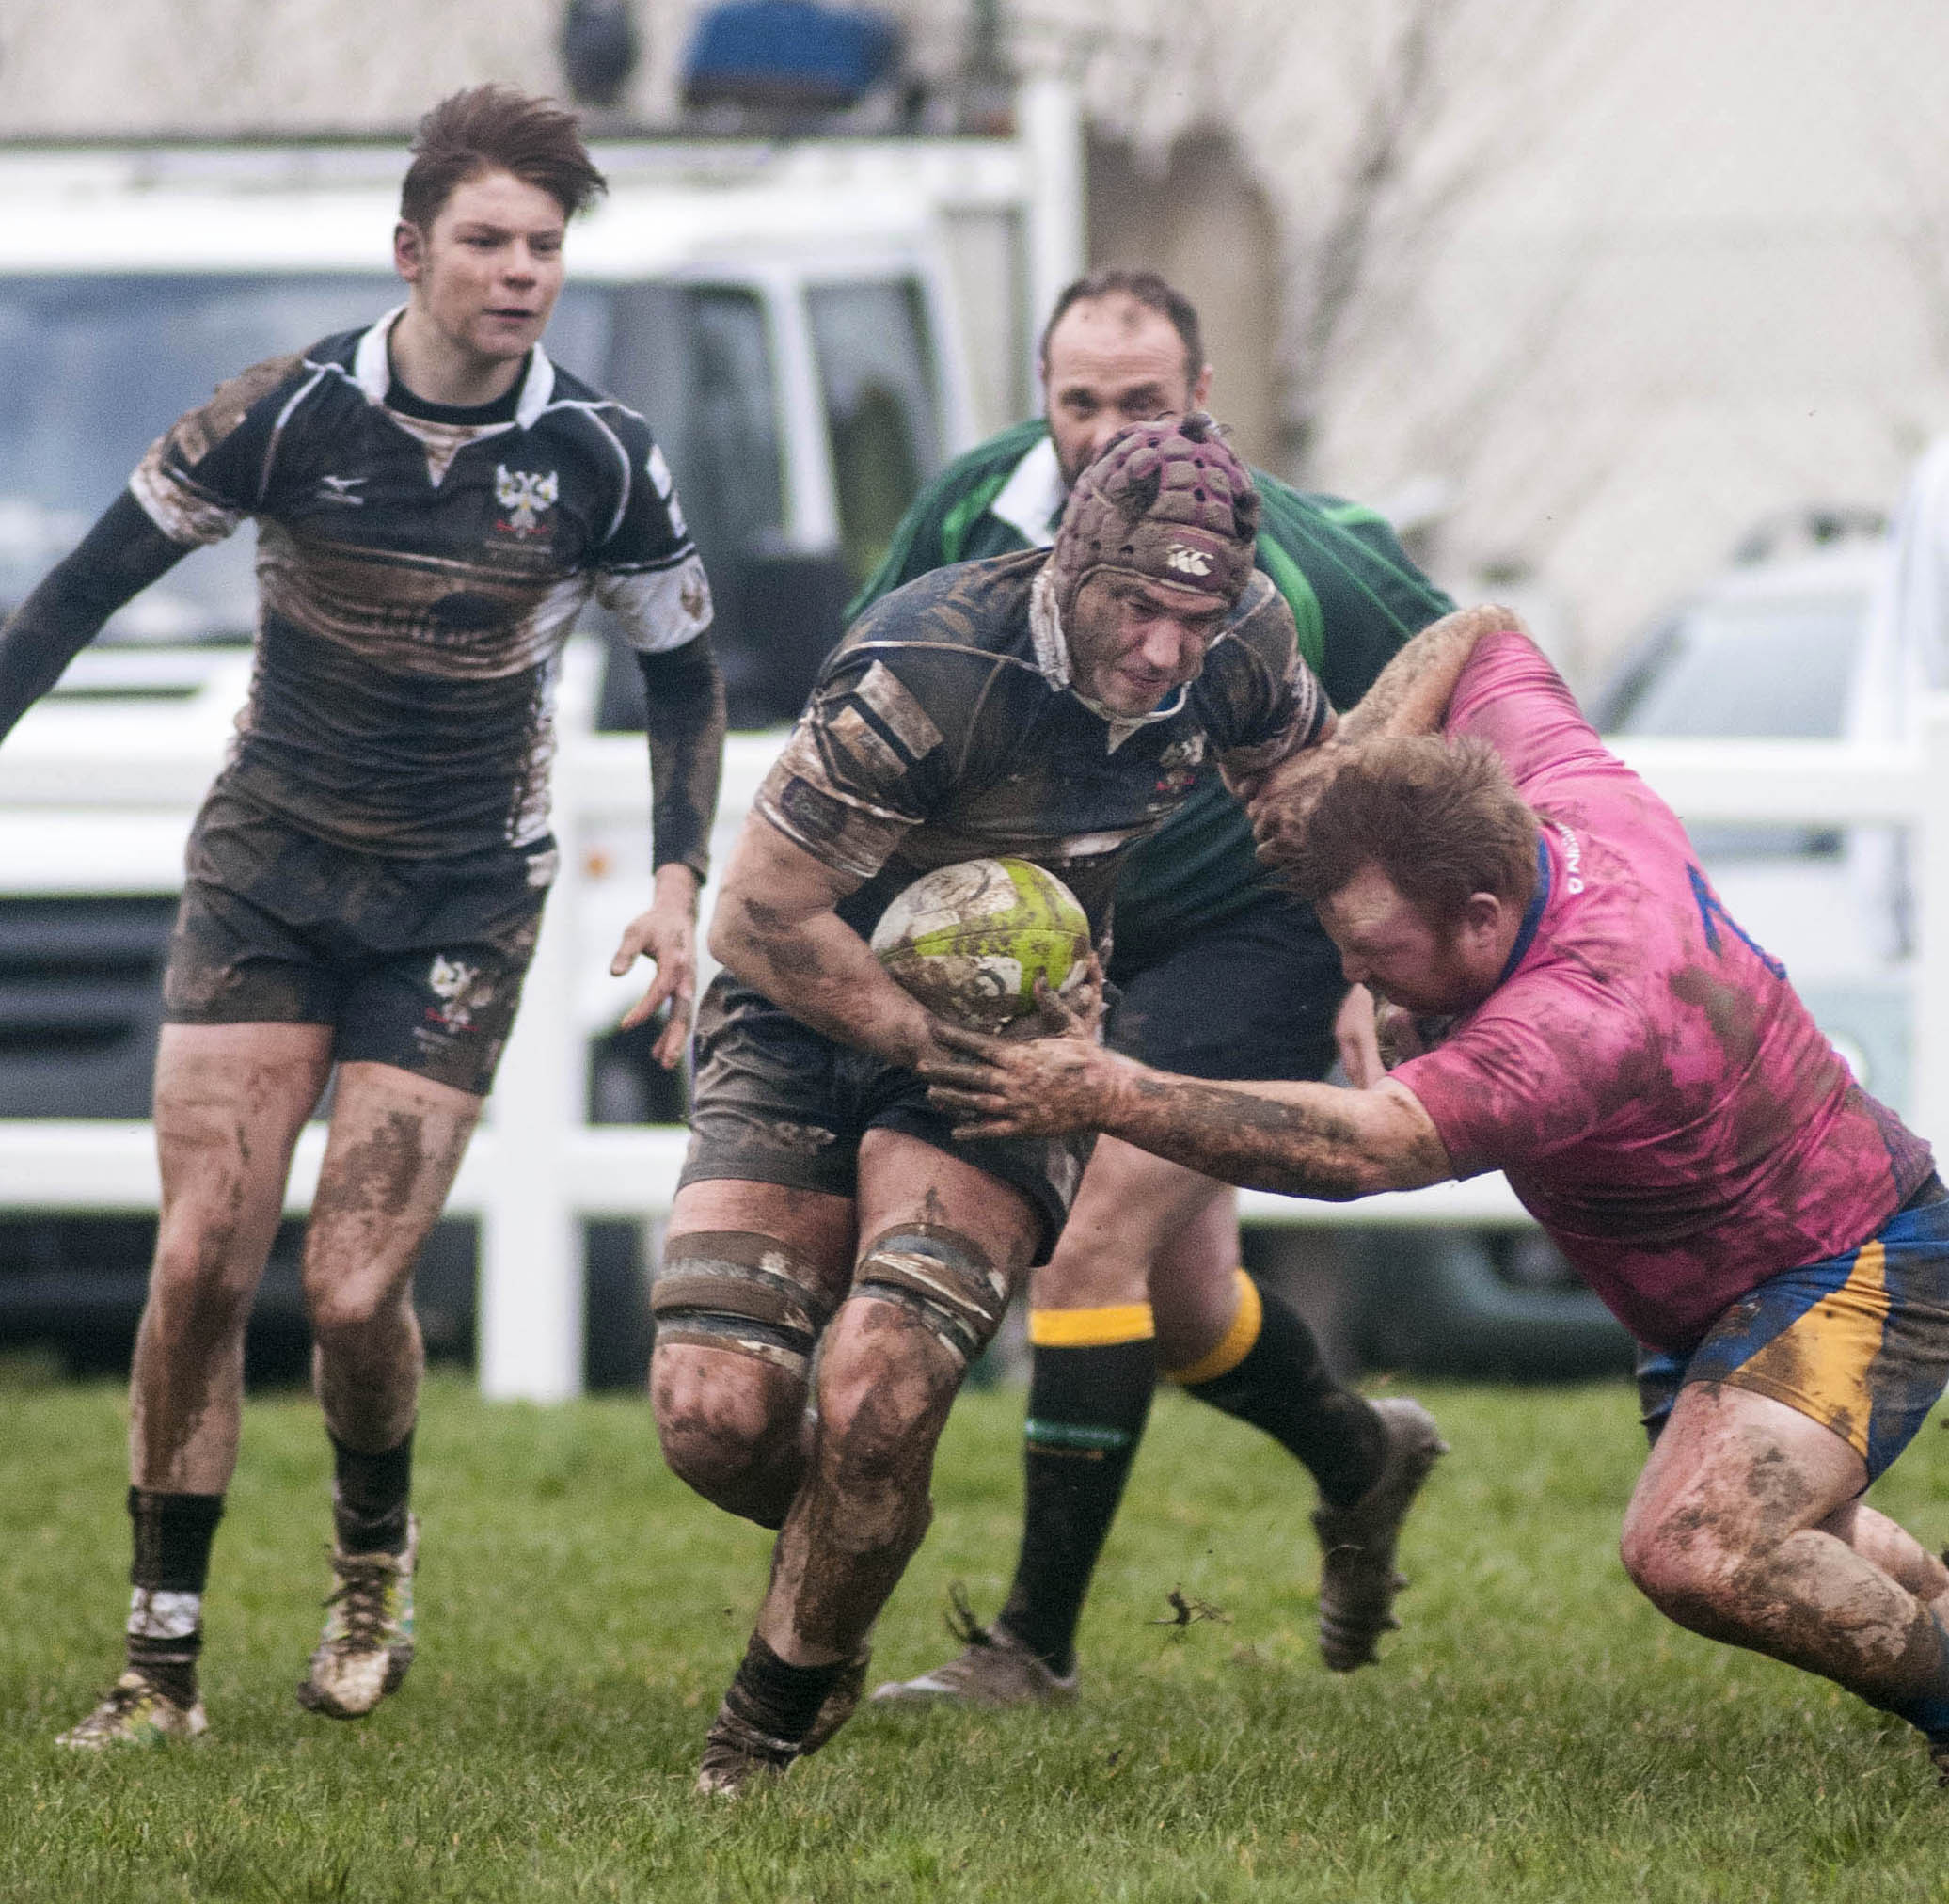 Falmouth won 22-17 at Truro last season, but lost 14-26 at the Recreation Ground